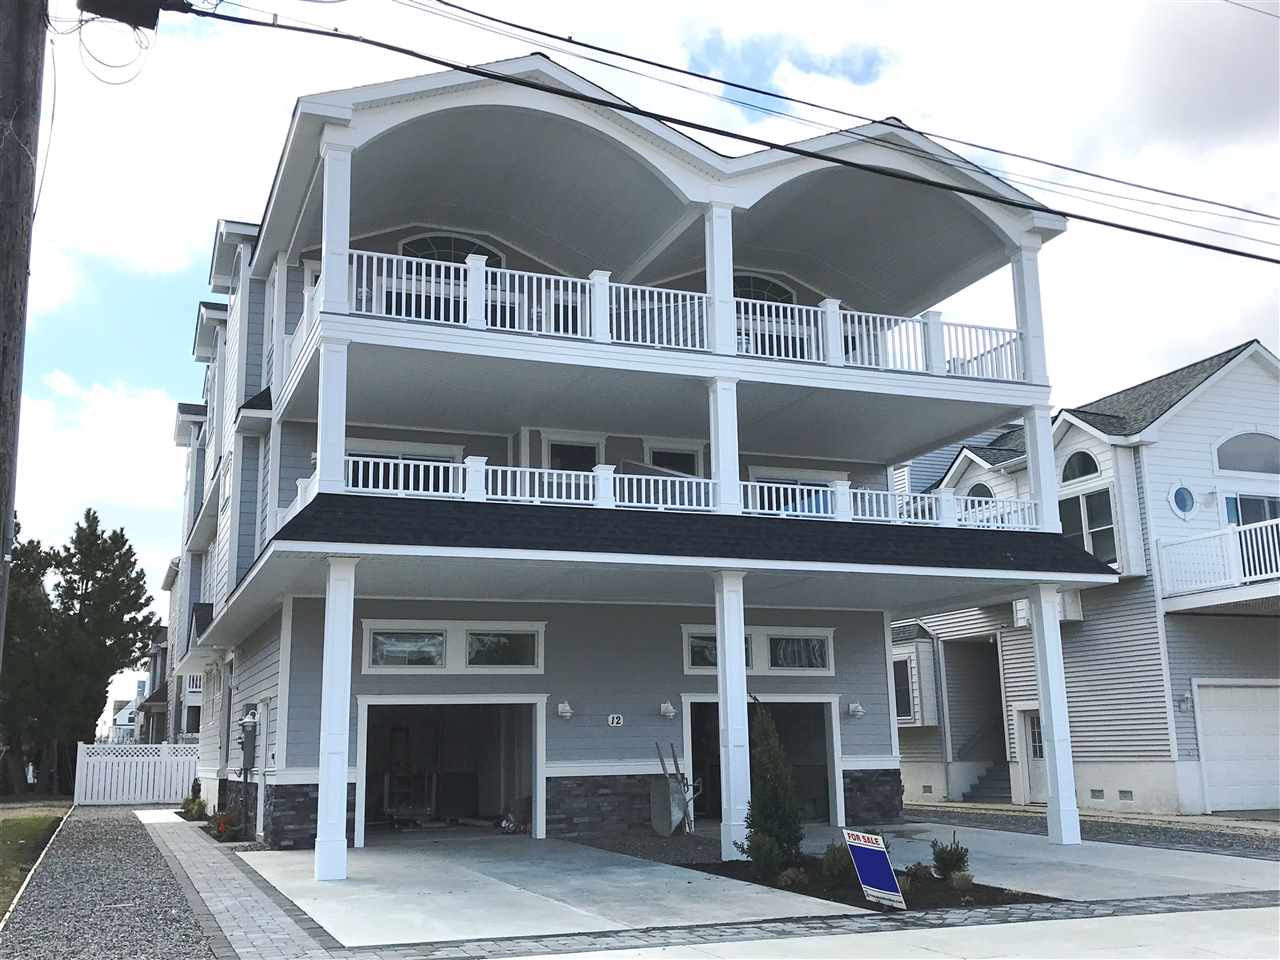 12 East or W 64th Street, Sea Isle City, NJ 08243